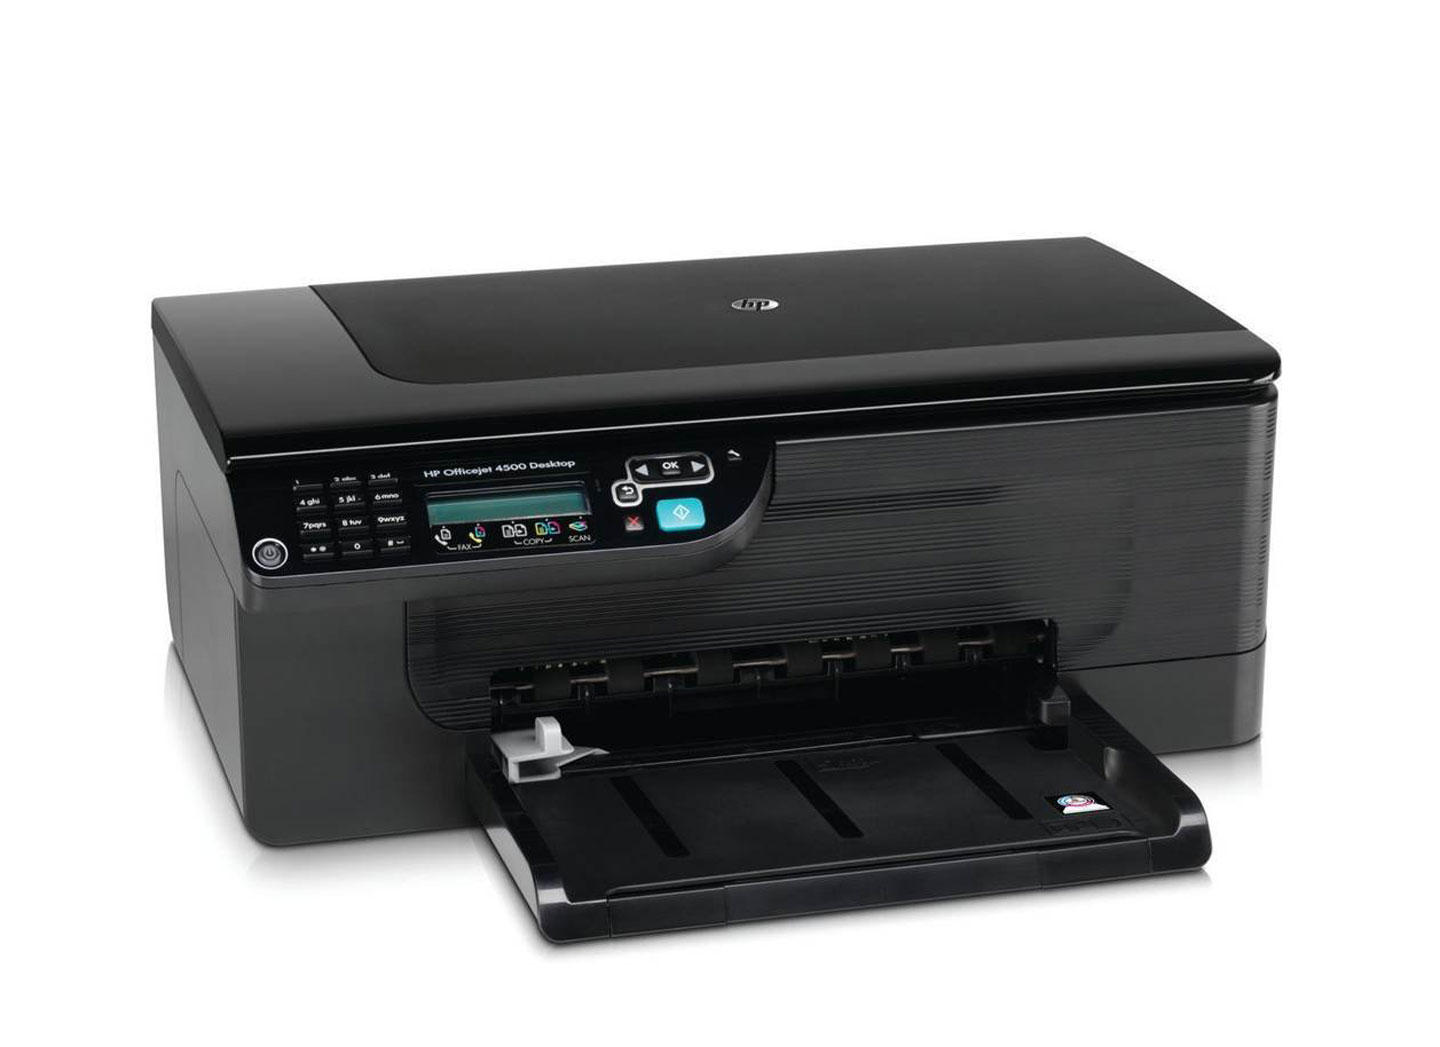 DRIVER STAMPANTE HP OFFICEJET 4500 SCARICA